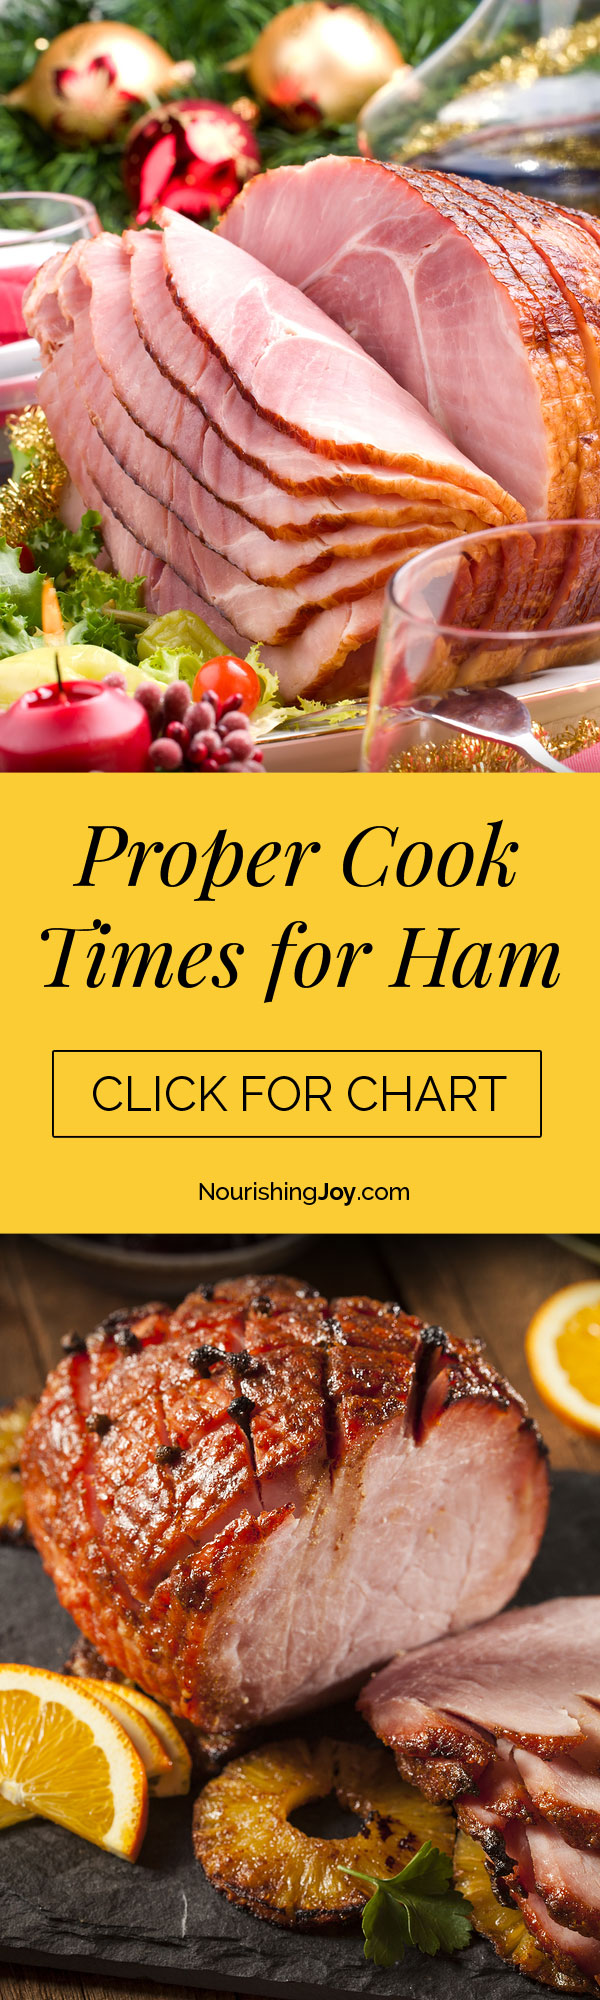 Whether you want to slow-roast your ham or blast it to have a super-short cook time ham is versatile - and here's a simple chart with proper cook times.